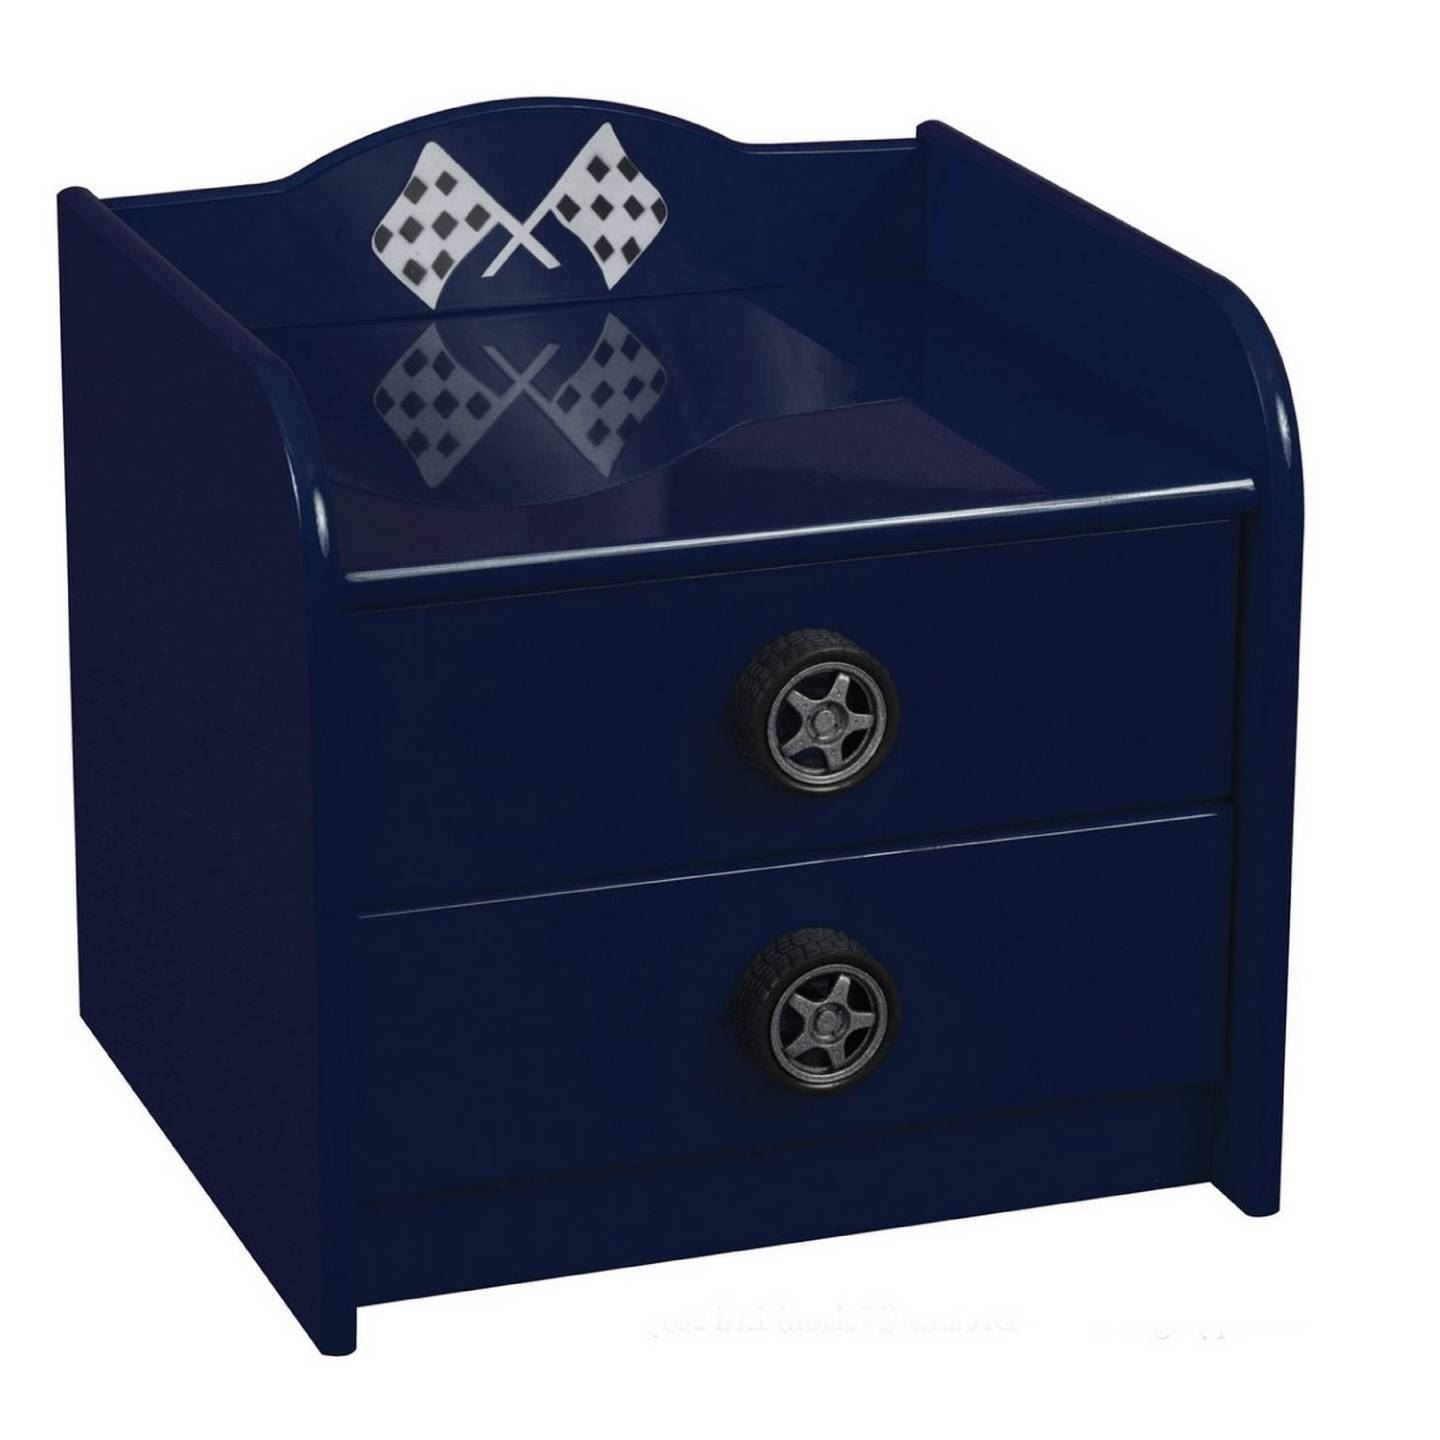 Sweet Dreams Formula Car Bedside Table Cabinet Children Bedroom Blue